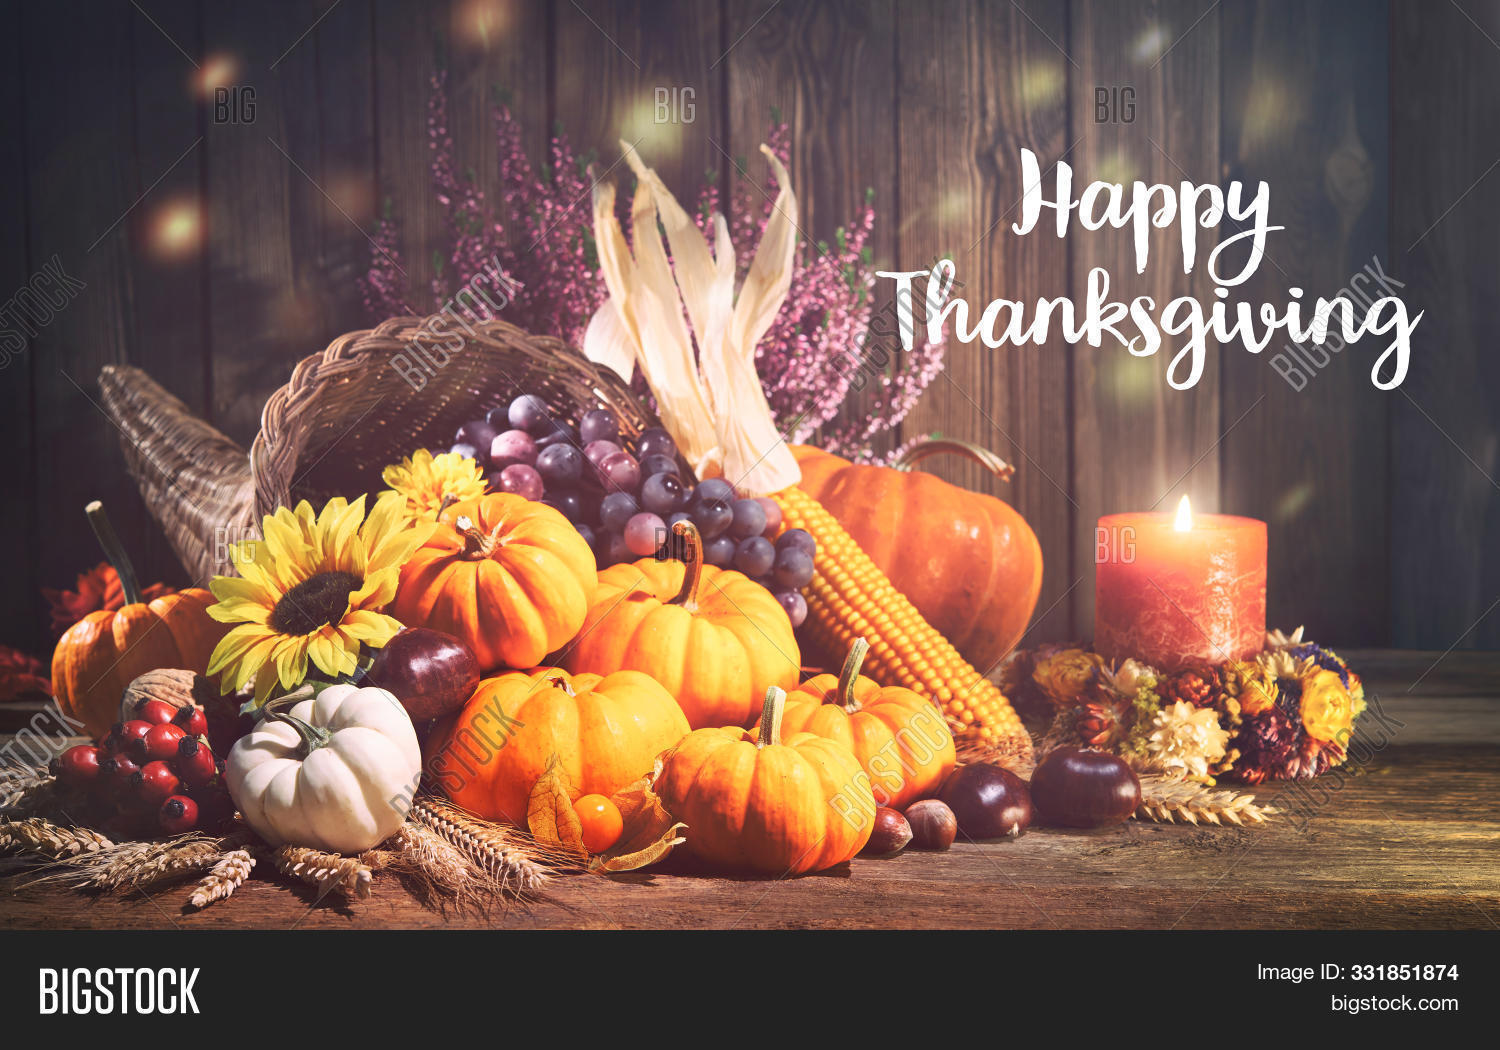 abundance,agriculture,apple,autumn,autumnal,background,barn,basket,candle,celebrate,celebration,concept,copy space,corncob,cornucopia,day,decoration,fall,farm,farming,festival,food,fruit,gourd,grapes,halloween,happy,harvest,harvesting,holiday,horn,horn of plenty,lantern,leaf,light,nut,organic,plenty,pumpkins,red,rural,rustic,seasonal,squash,still life,sunbeam,table,thanksgiving,vegetable,wooden